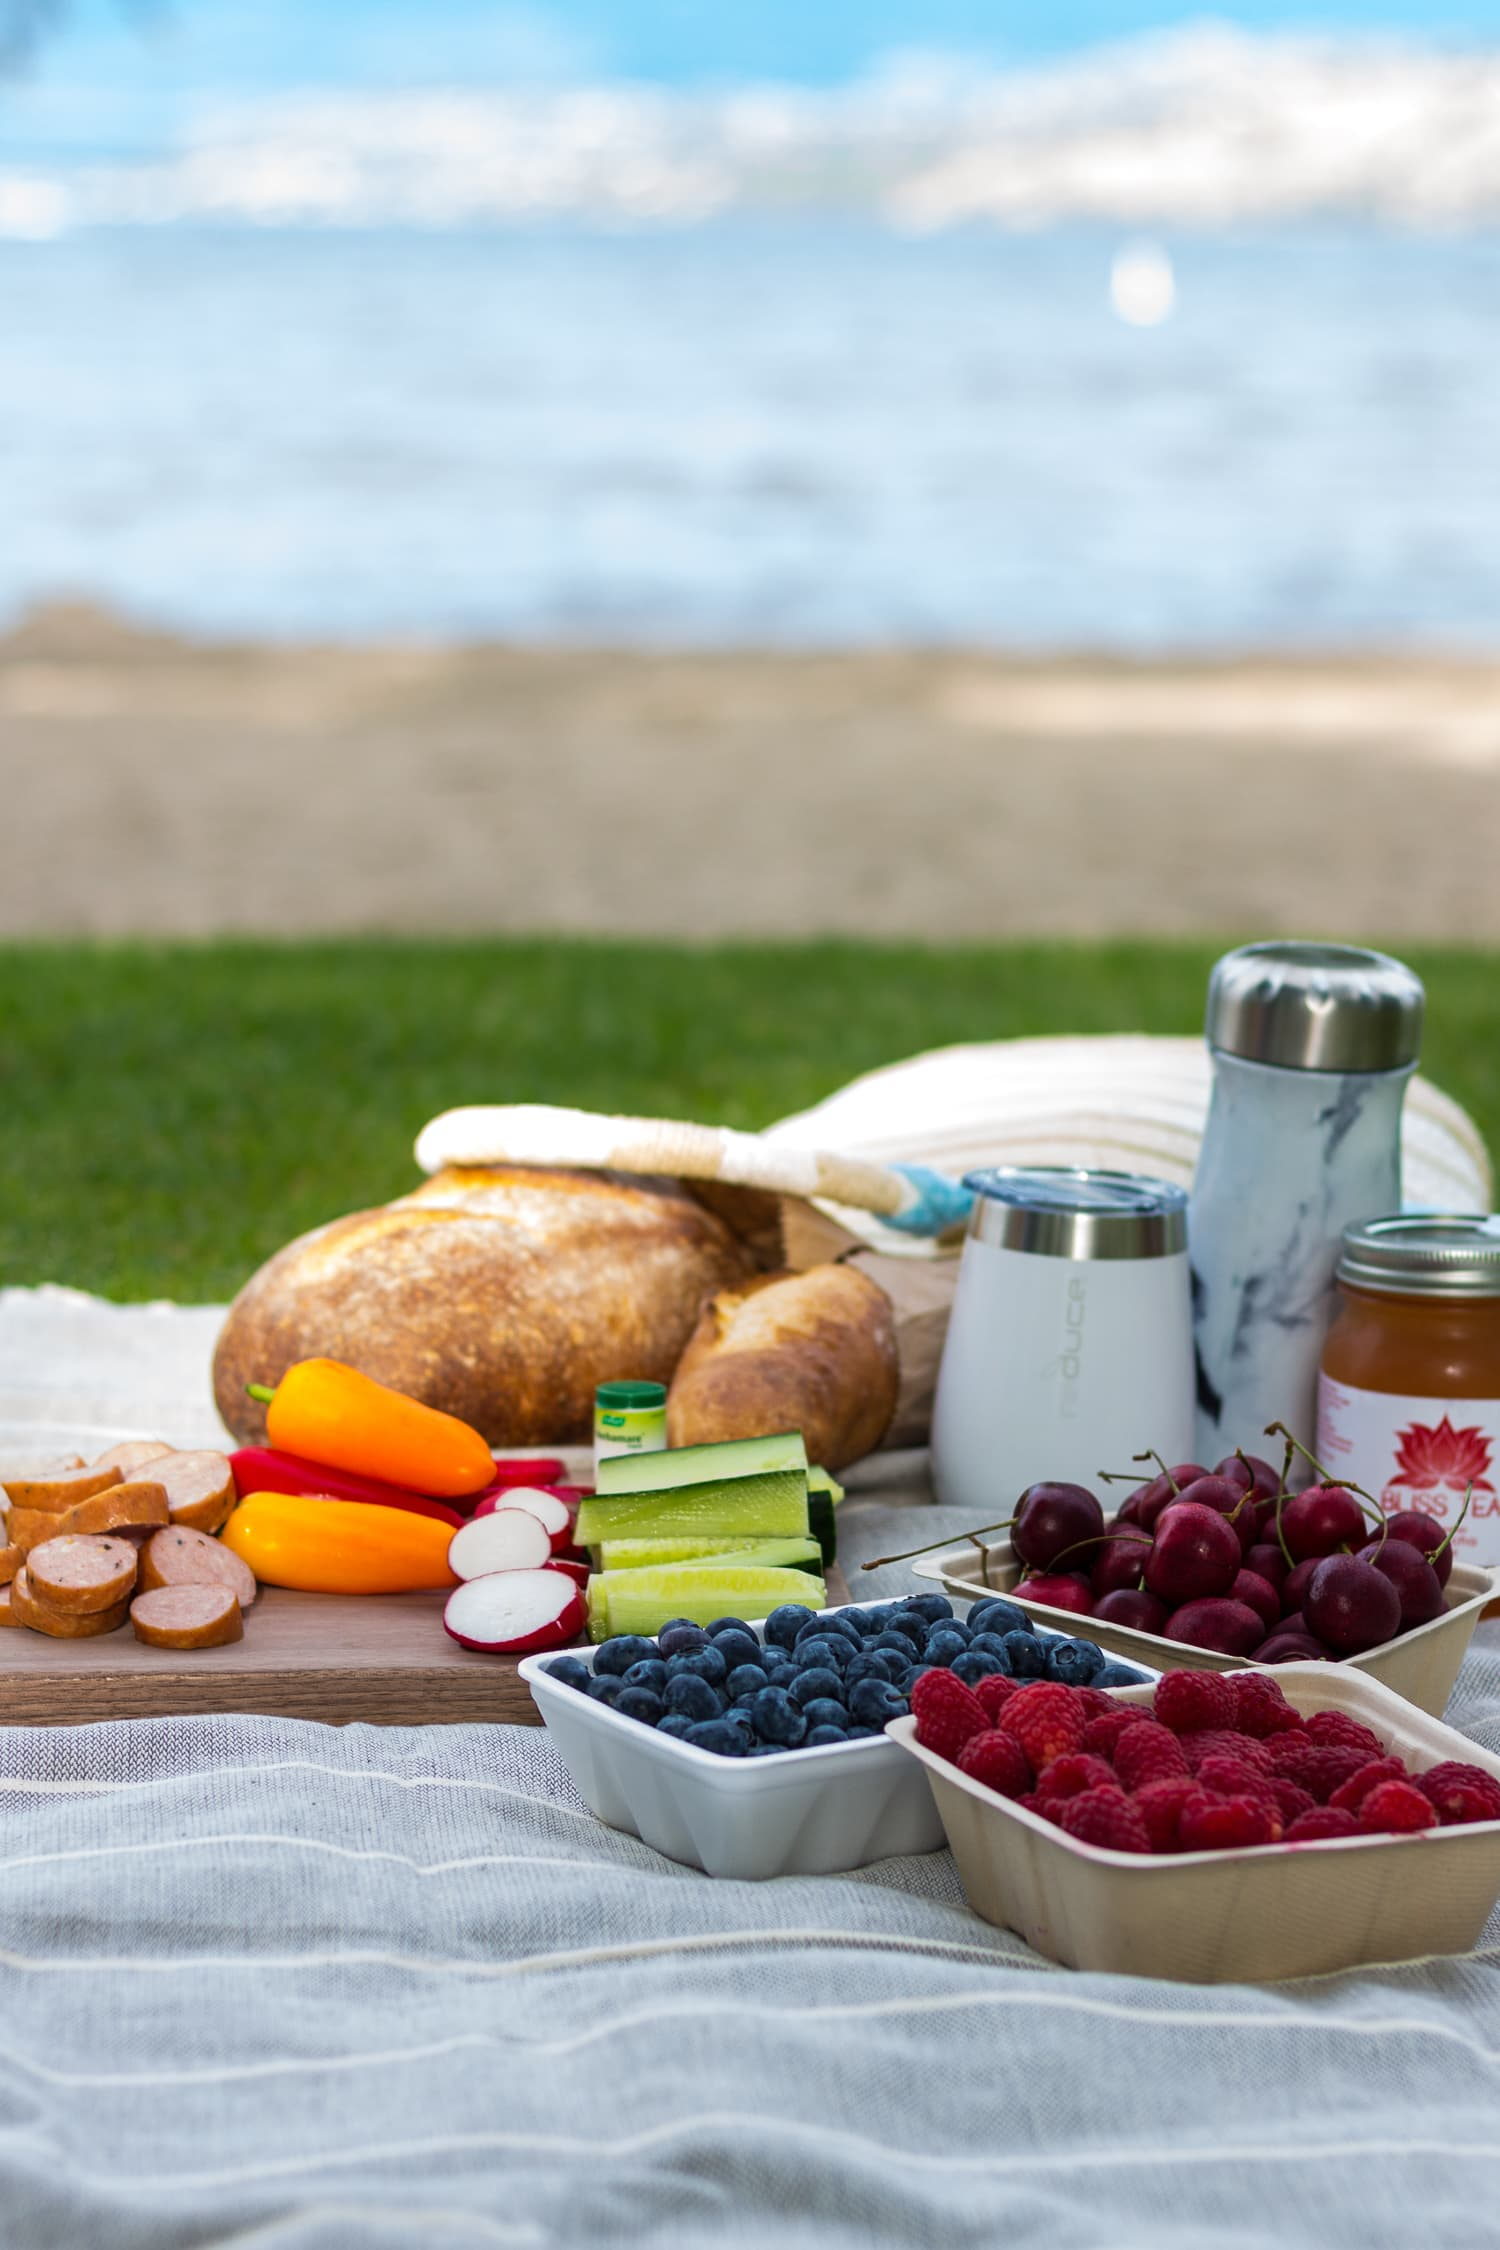 Picnic set up on a blanket with beach in the background